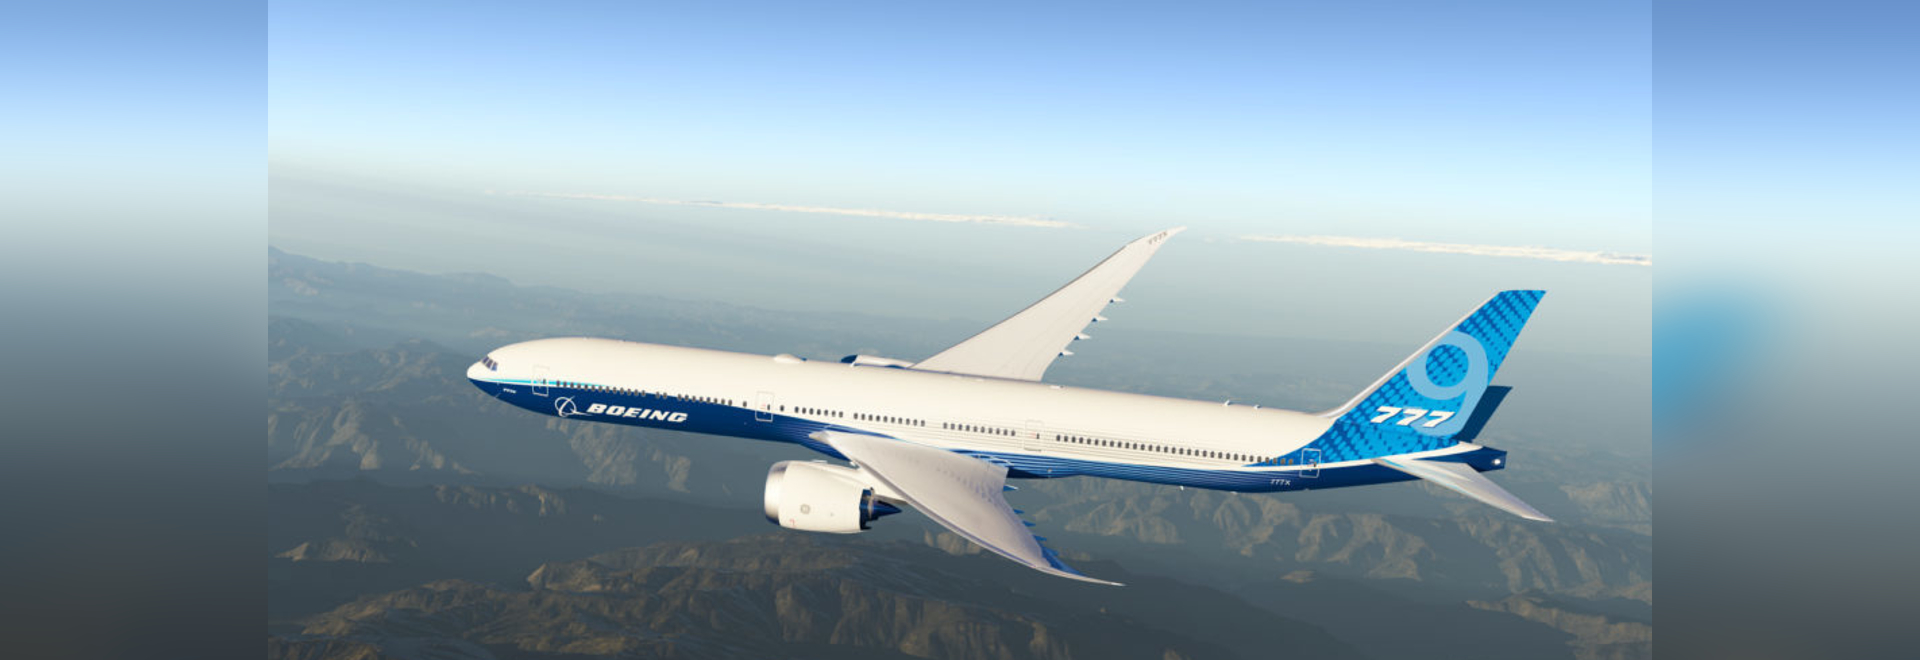 First delivery of Liebherr stand-alone electronics for Boeing